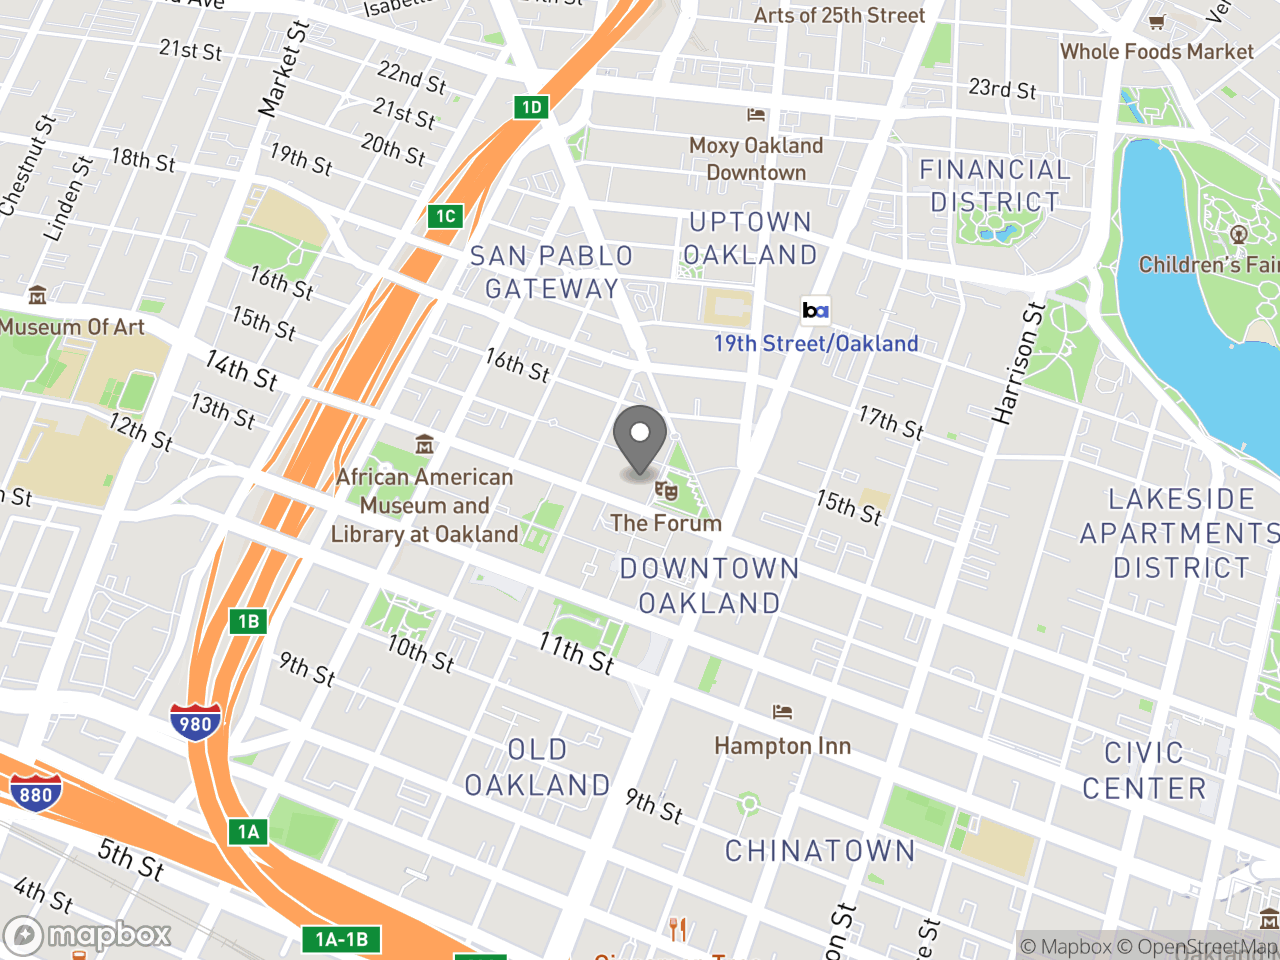 Map image for Rent Board Panel Meeting November 7, 2019, located at 1 Frank H. Ogawa Plaza in Oakland, CA 94612